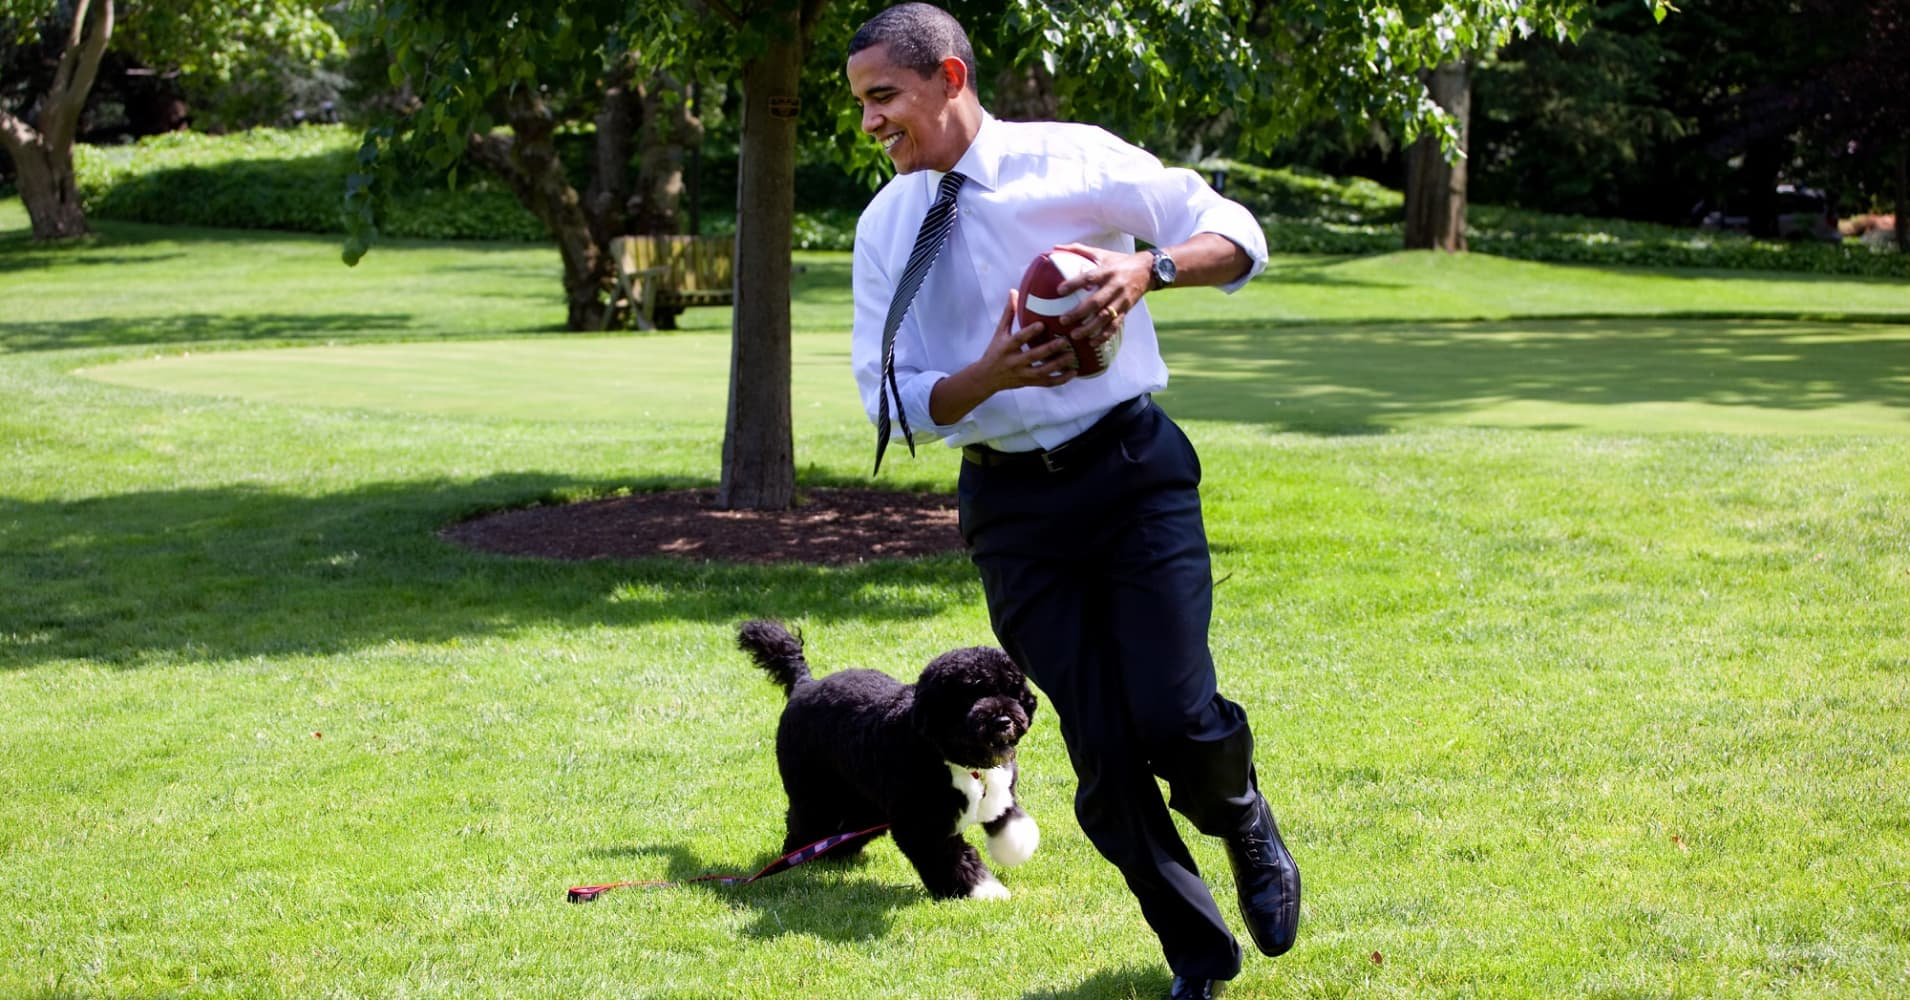 Former U.S. President Barack Obama plays football with the family dog Bo on the South Lawn of the White House.